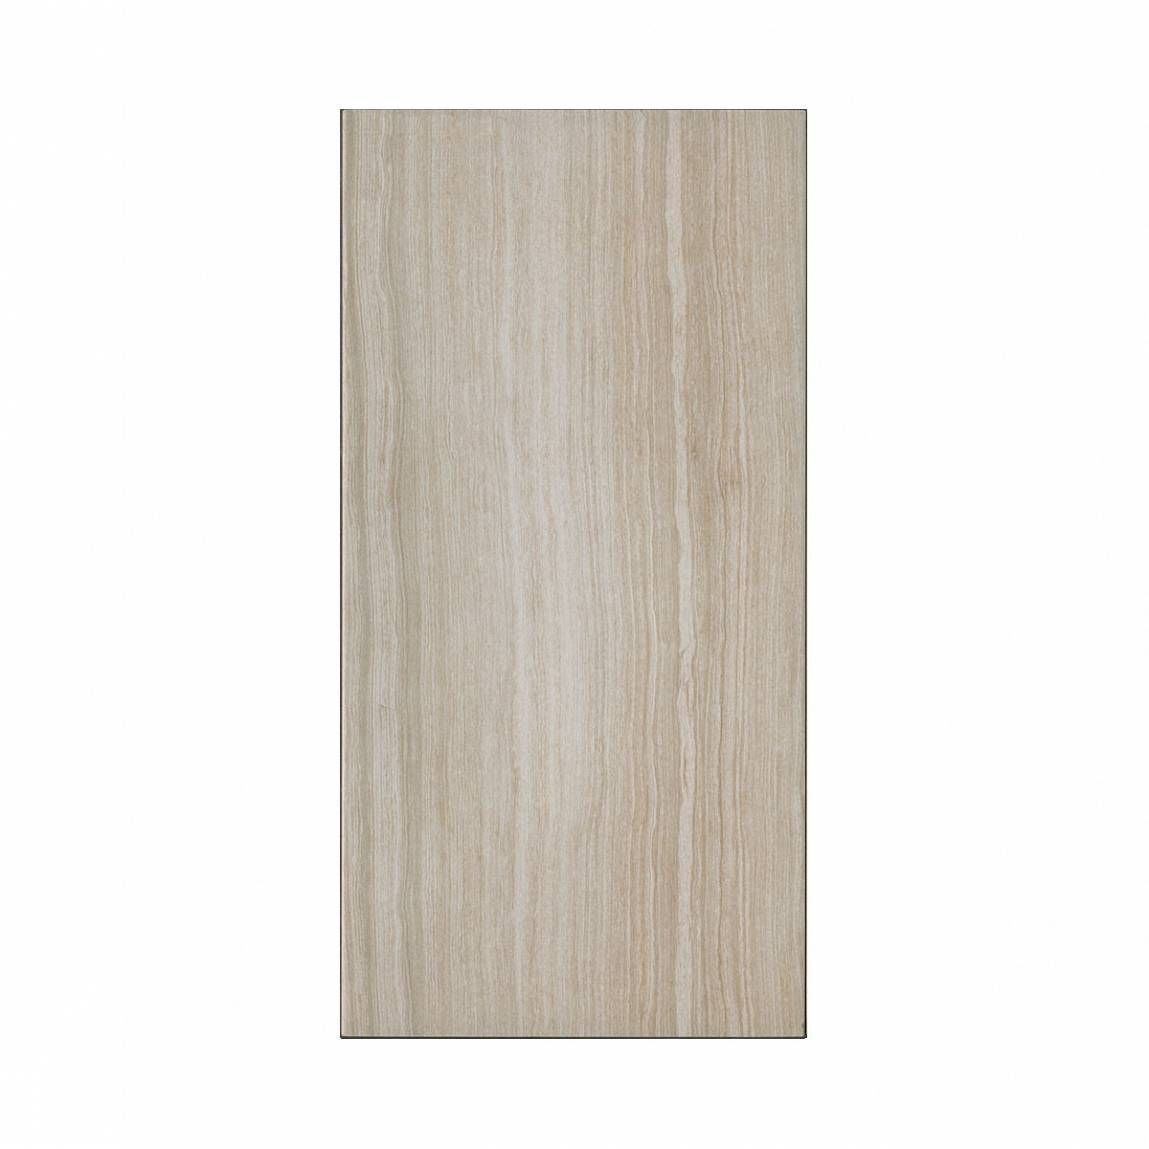 Zena Bone Glazed Porcelain Floor & Wall Tile 30cm x 60cm - Victoria ...